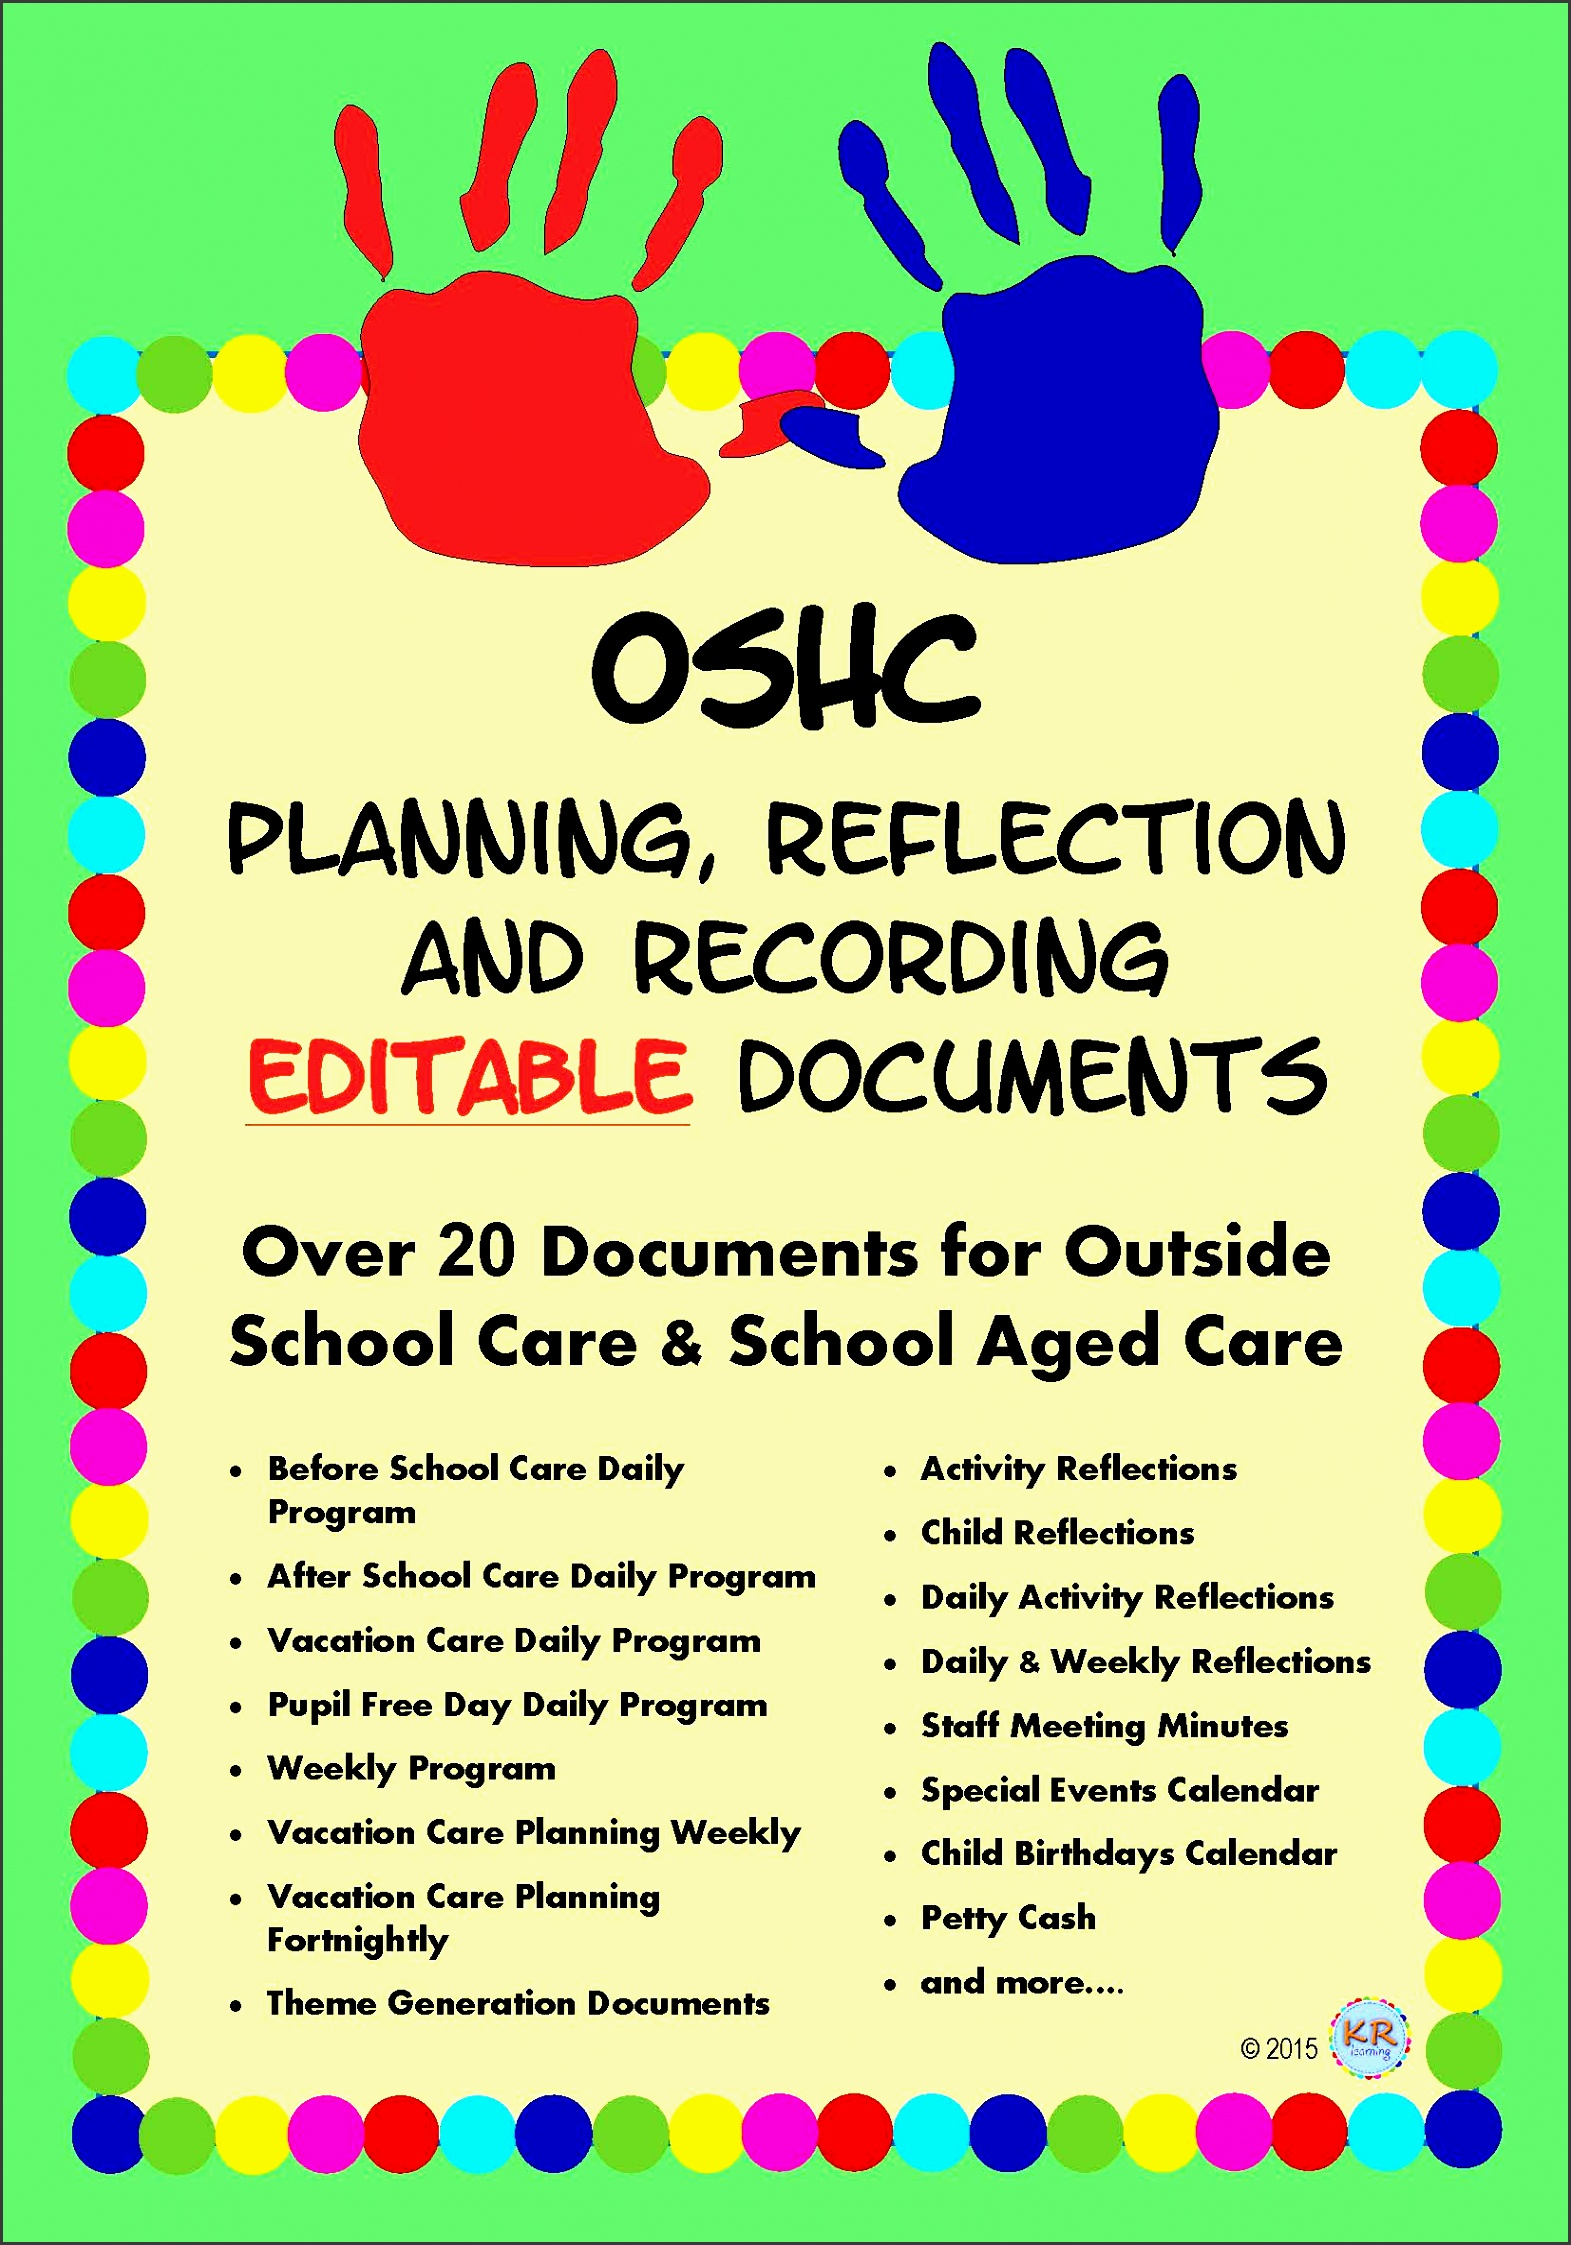 outside school care editable planning reflection and recording documents for oshc oosh ooshc